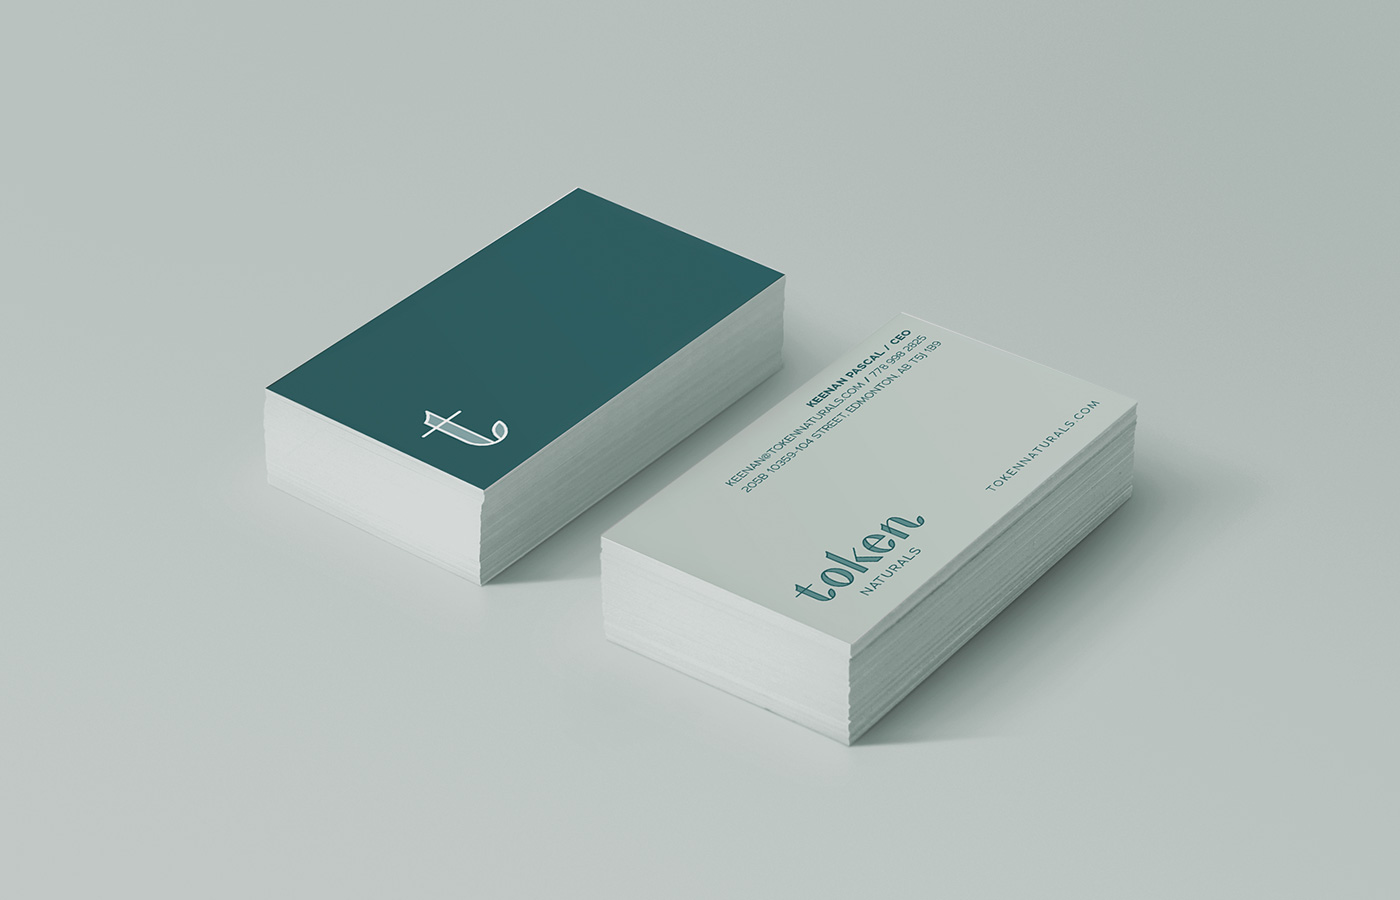 covetdesign_logo-design_branding_package-design_graphic-design_vancouver_work_wide_token-business-card